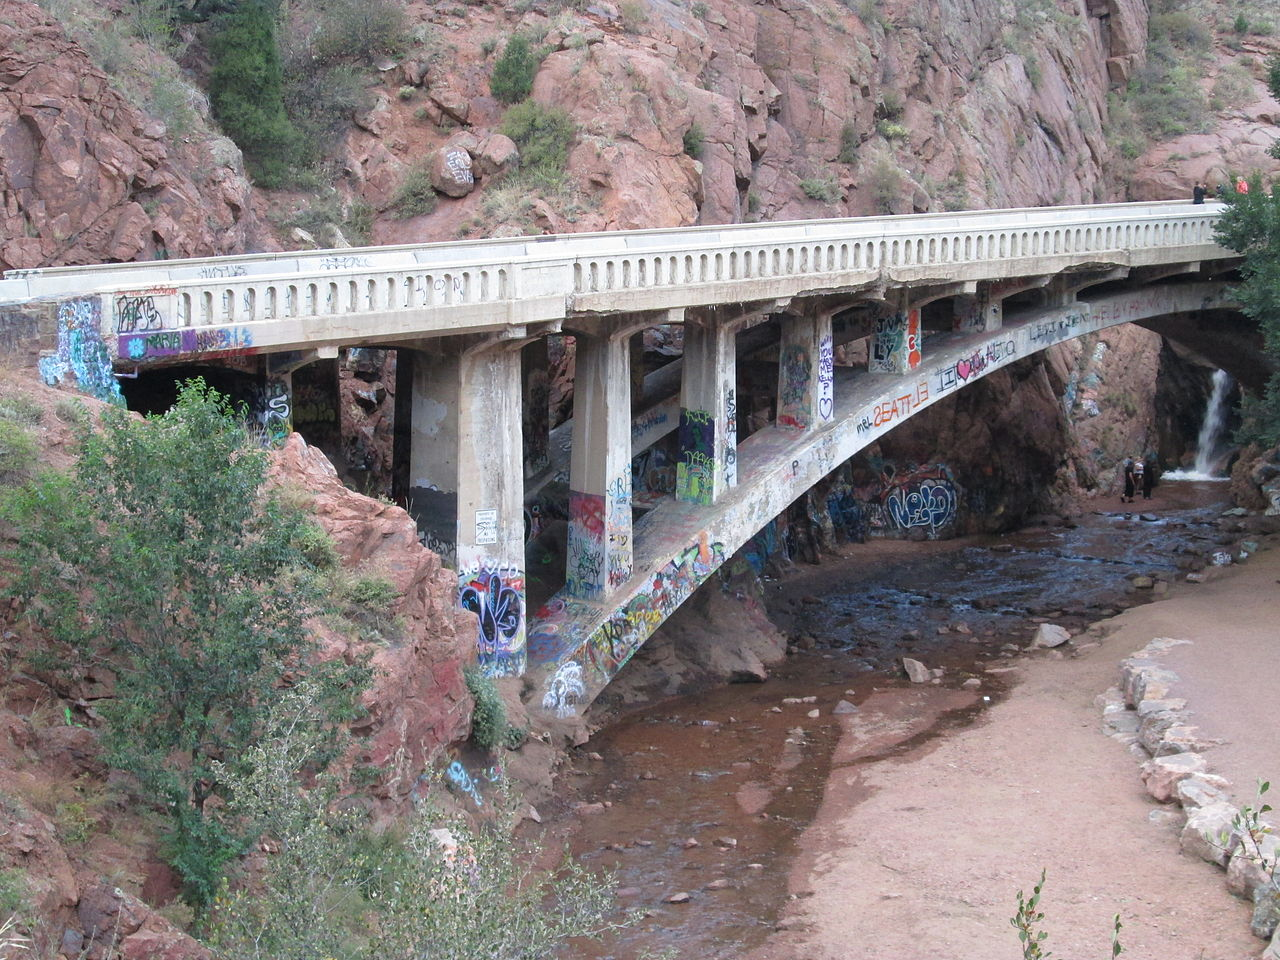 Filebridge Over Fountain Creek  Manitou Springs, Cojpg. Reproductive Endocrinologist Michigan. Es Seguro Comprar En Amazon Wire Tie Anchors. Probate Lawyer Los Angeles F H Furr Plumbing. Walk In Tubs Kansas City North Star Tree Farm. Real Estate Tax Lawyer Whitening Facial Scrub. Funding Fee For Va Loans Uvu Masters Programs. How To Look Cute In School Hipaa Data Storage. Windshield Replacement Instant Quote